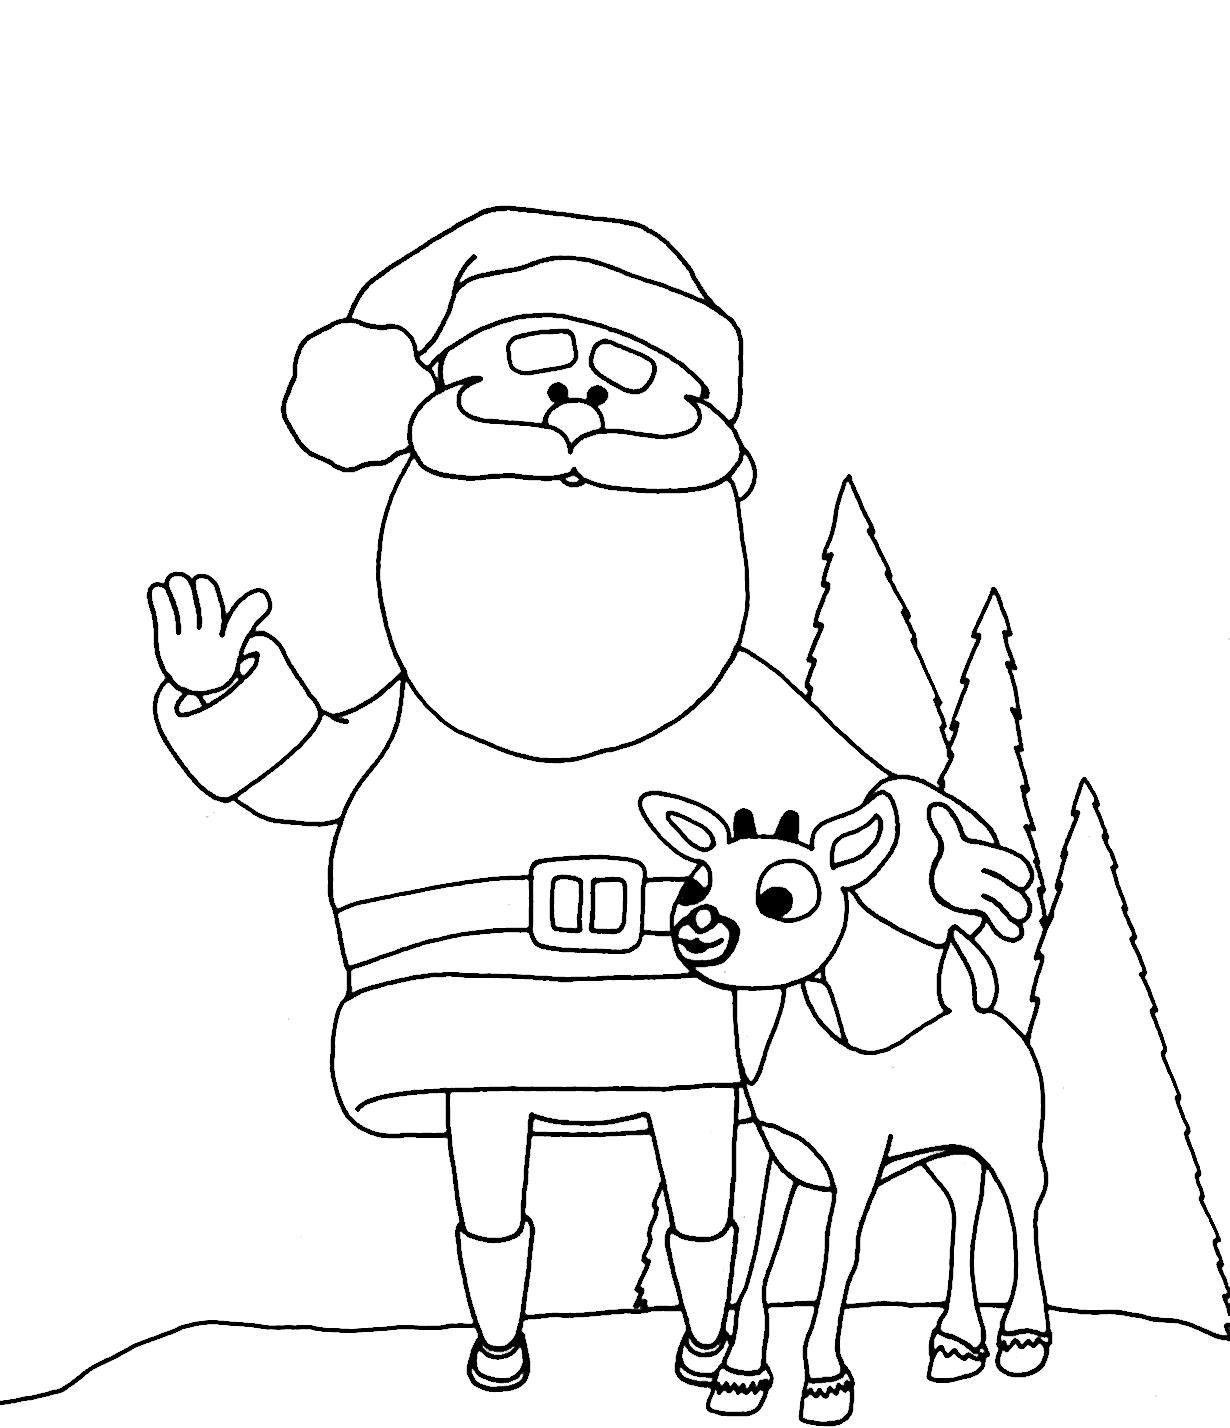 Santa Claus Drawing Easy at GetDrawings.com | Free for personal use ...